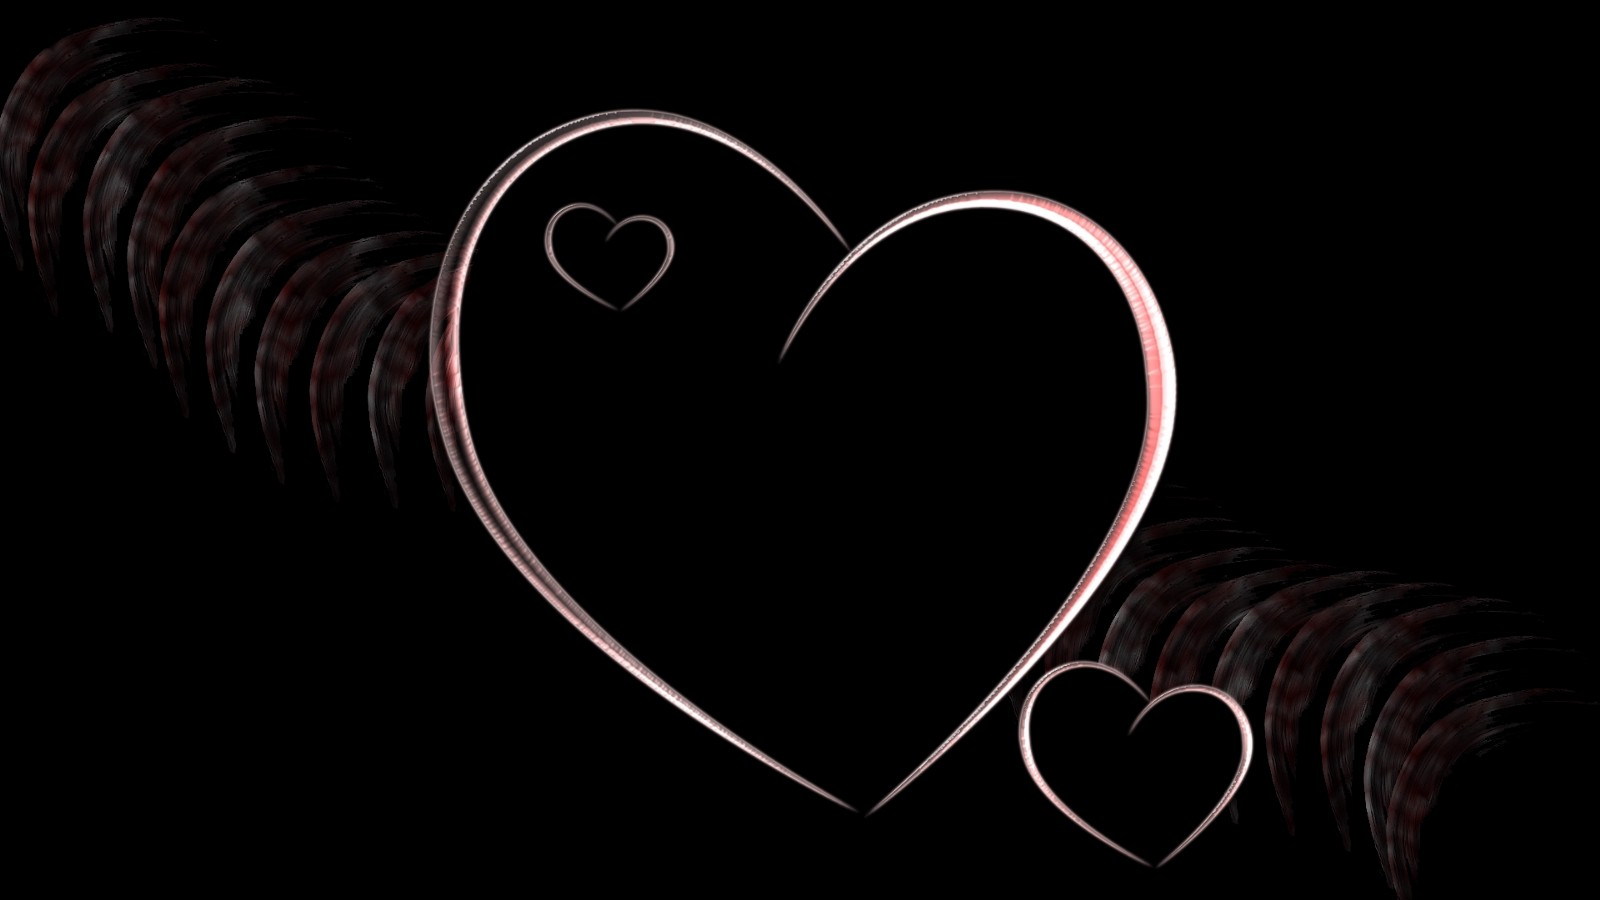 Image description black background with a pink heart in the center a smaller heart inside of the centered heart and a smaller heart below and to the